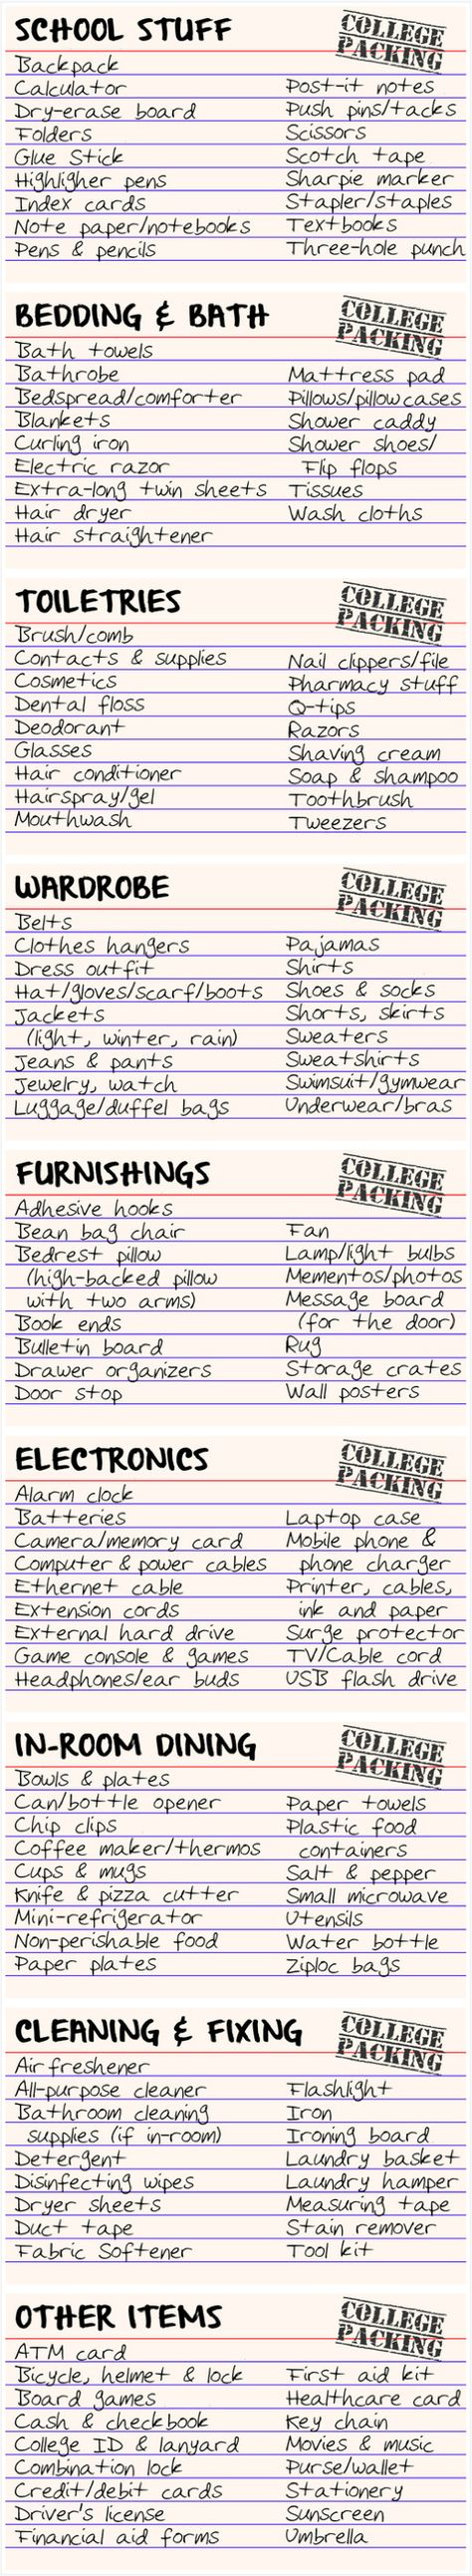 College packing index cards - liking this. shows what is needed in dorm and in class.